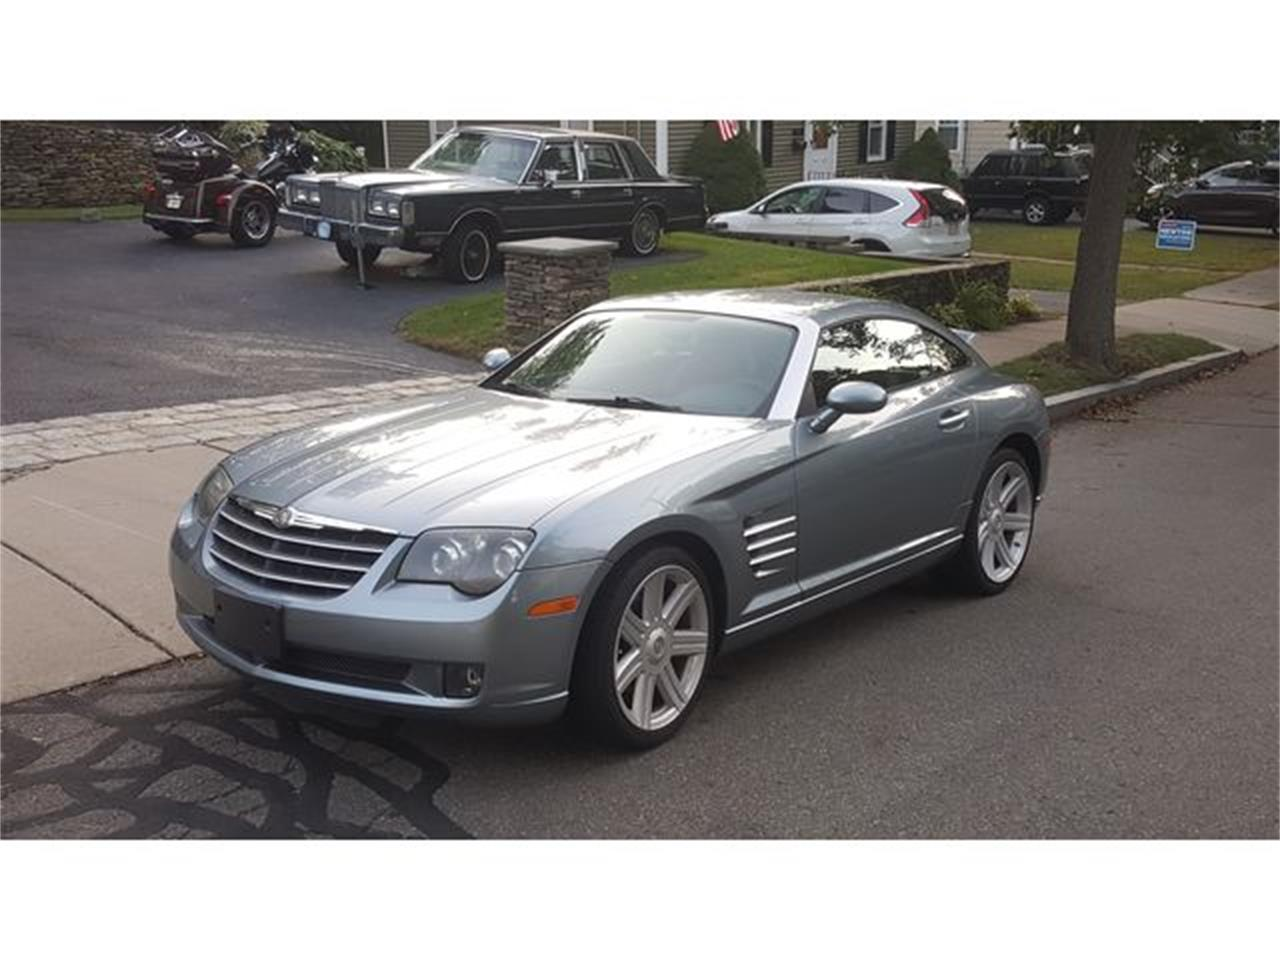 Large Picture of '04 Chrysler Crossfire Auction Vehicle Offered by Carlisle Auctions - 341 deactivated - R2UF